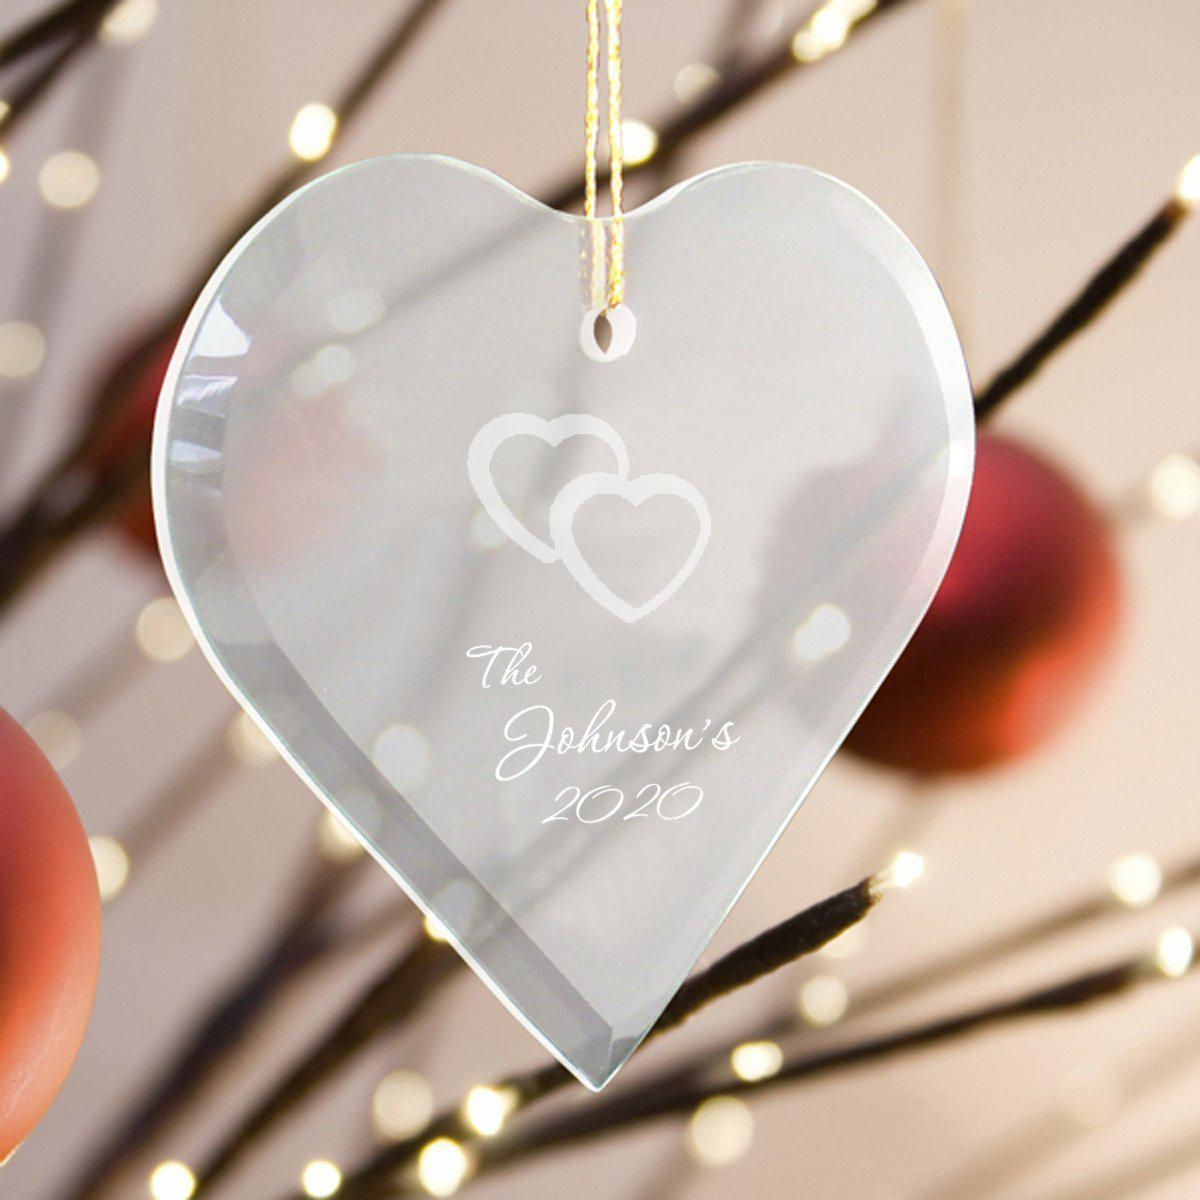 Personalized-Ornament-Christmas-Ornament-Heart-Shape-Glass